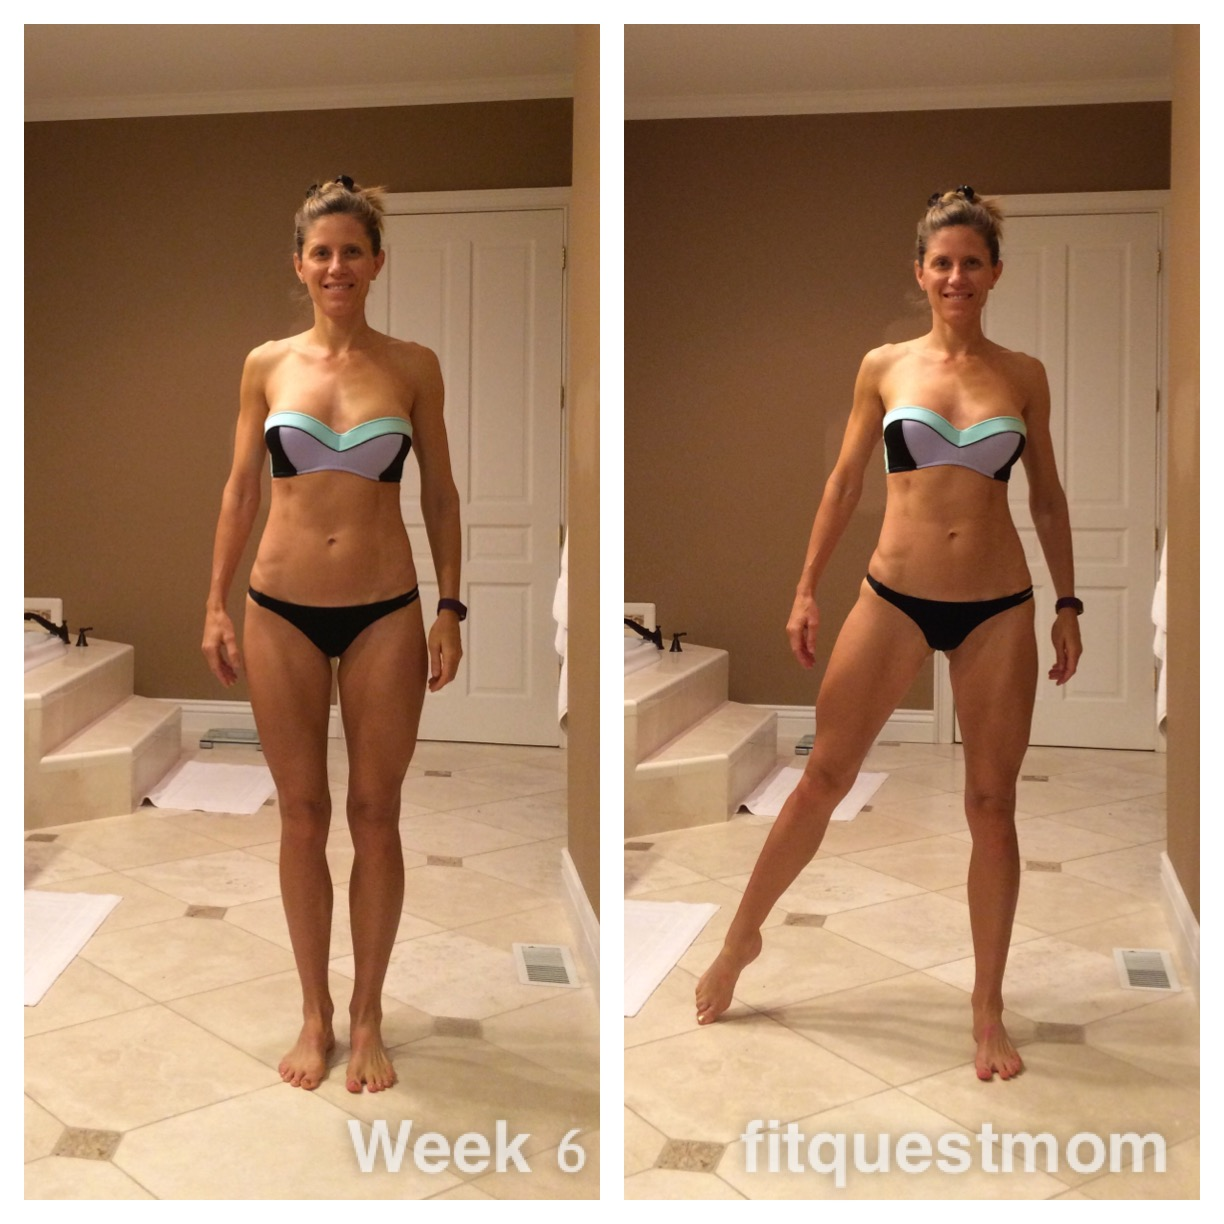 fitquestmom Day 43 Collage Blog 10.19.15